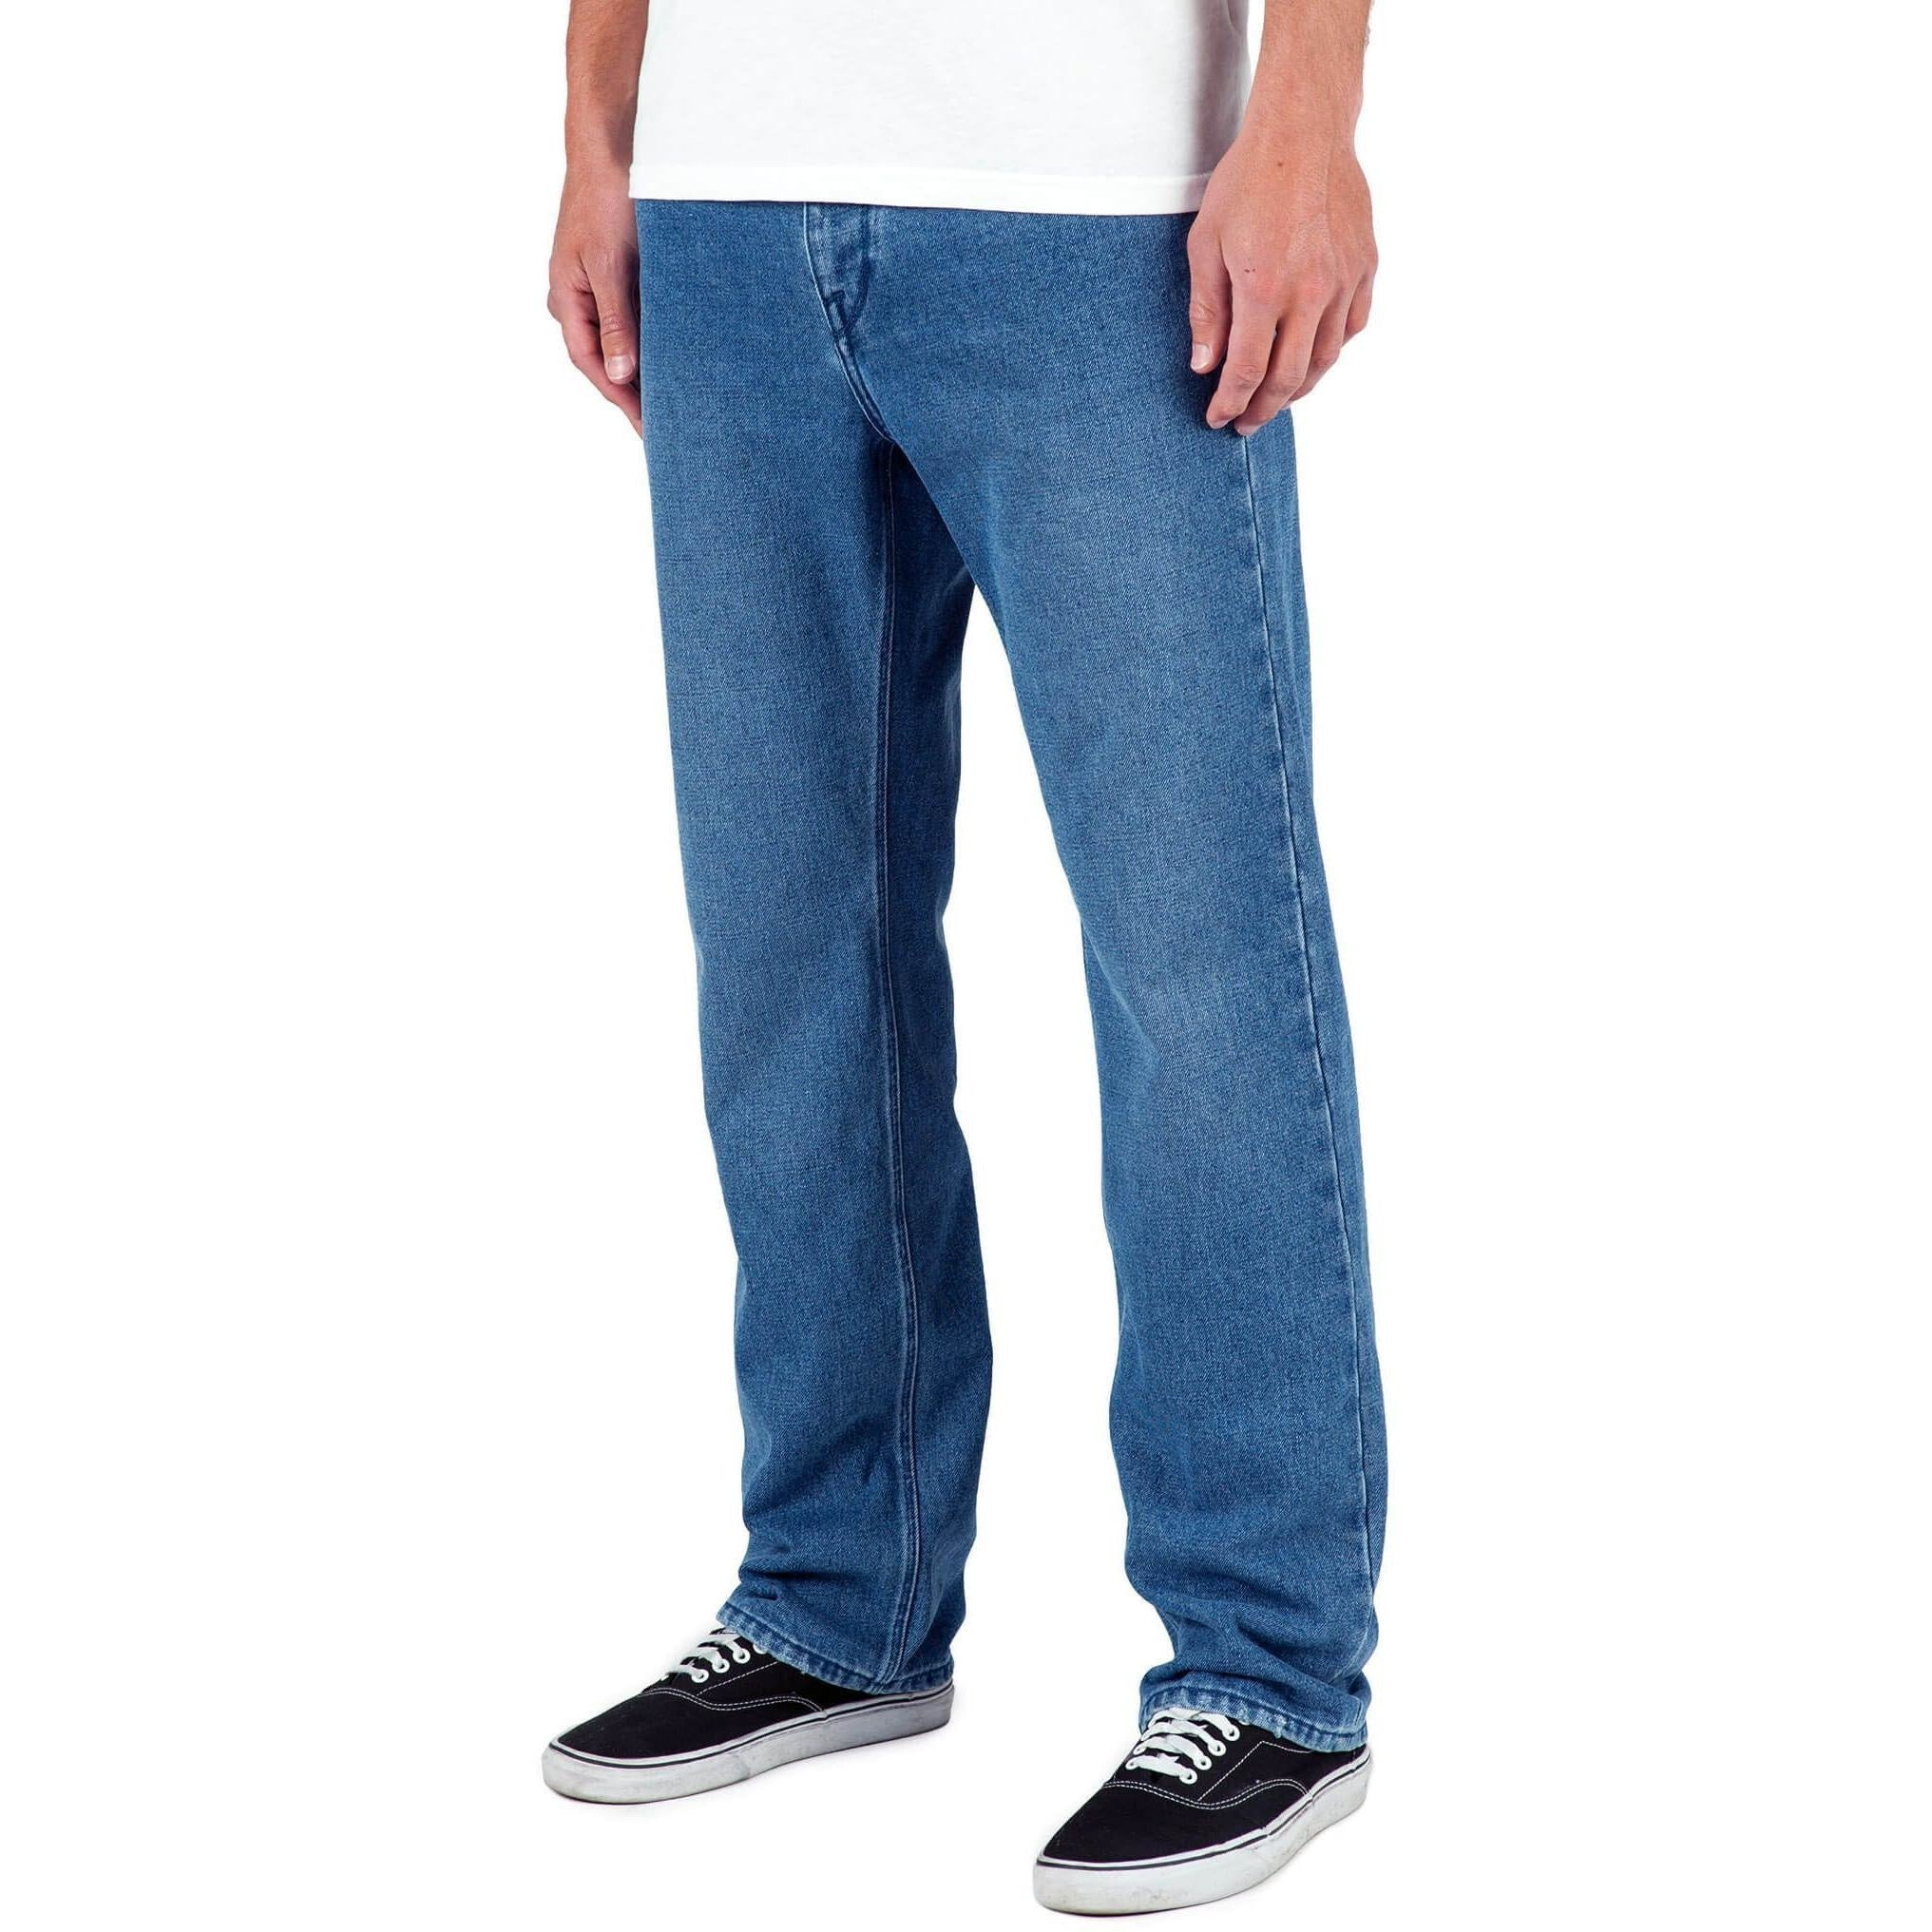 Volcom Kinkade Regular Fit Men's Jeans - 88 Gear